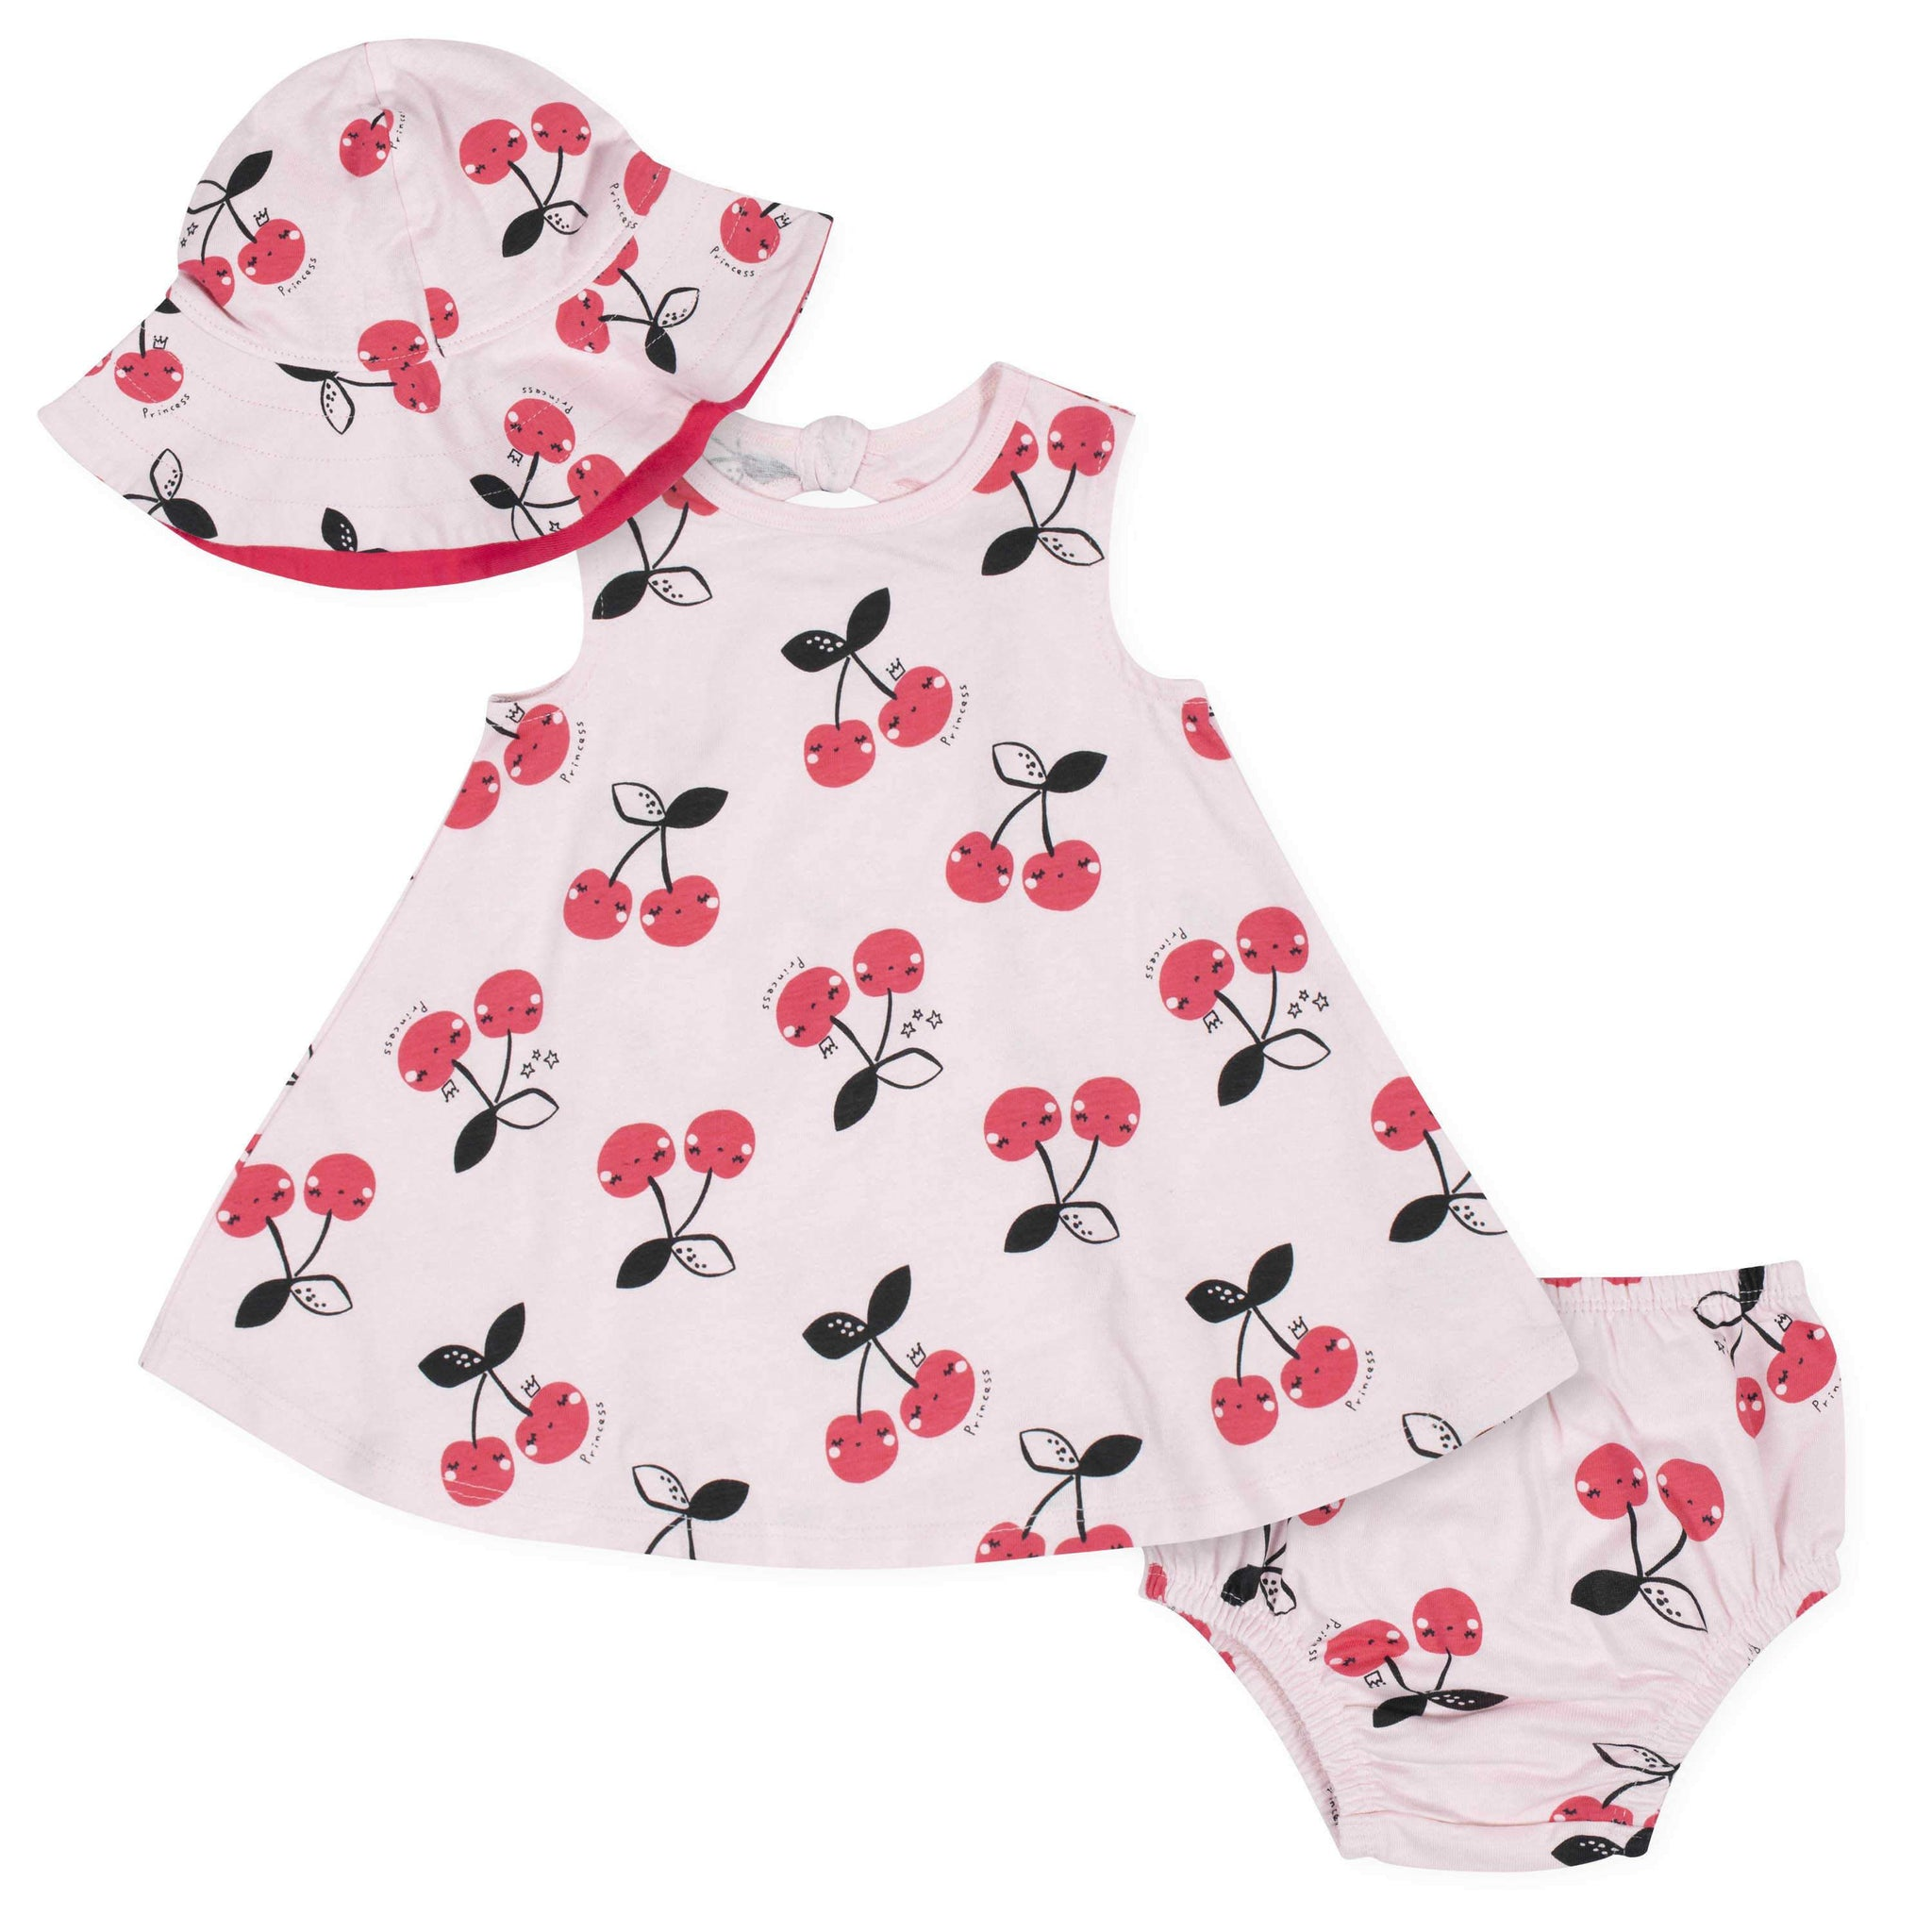 3-Piece Baby Girls' Cherry Dress, Diaper Cover, and Hat Set